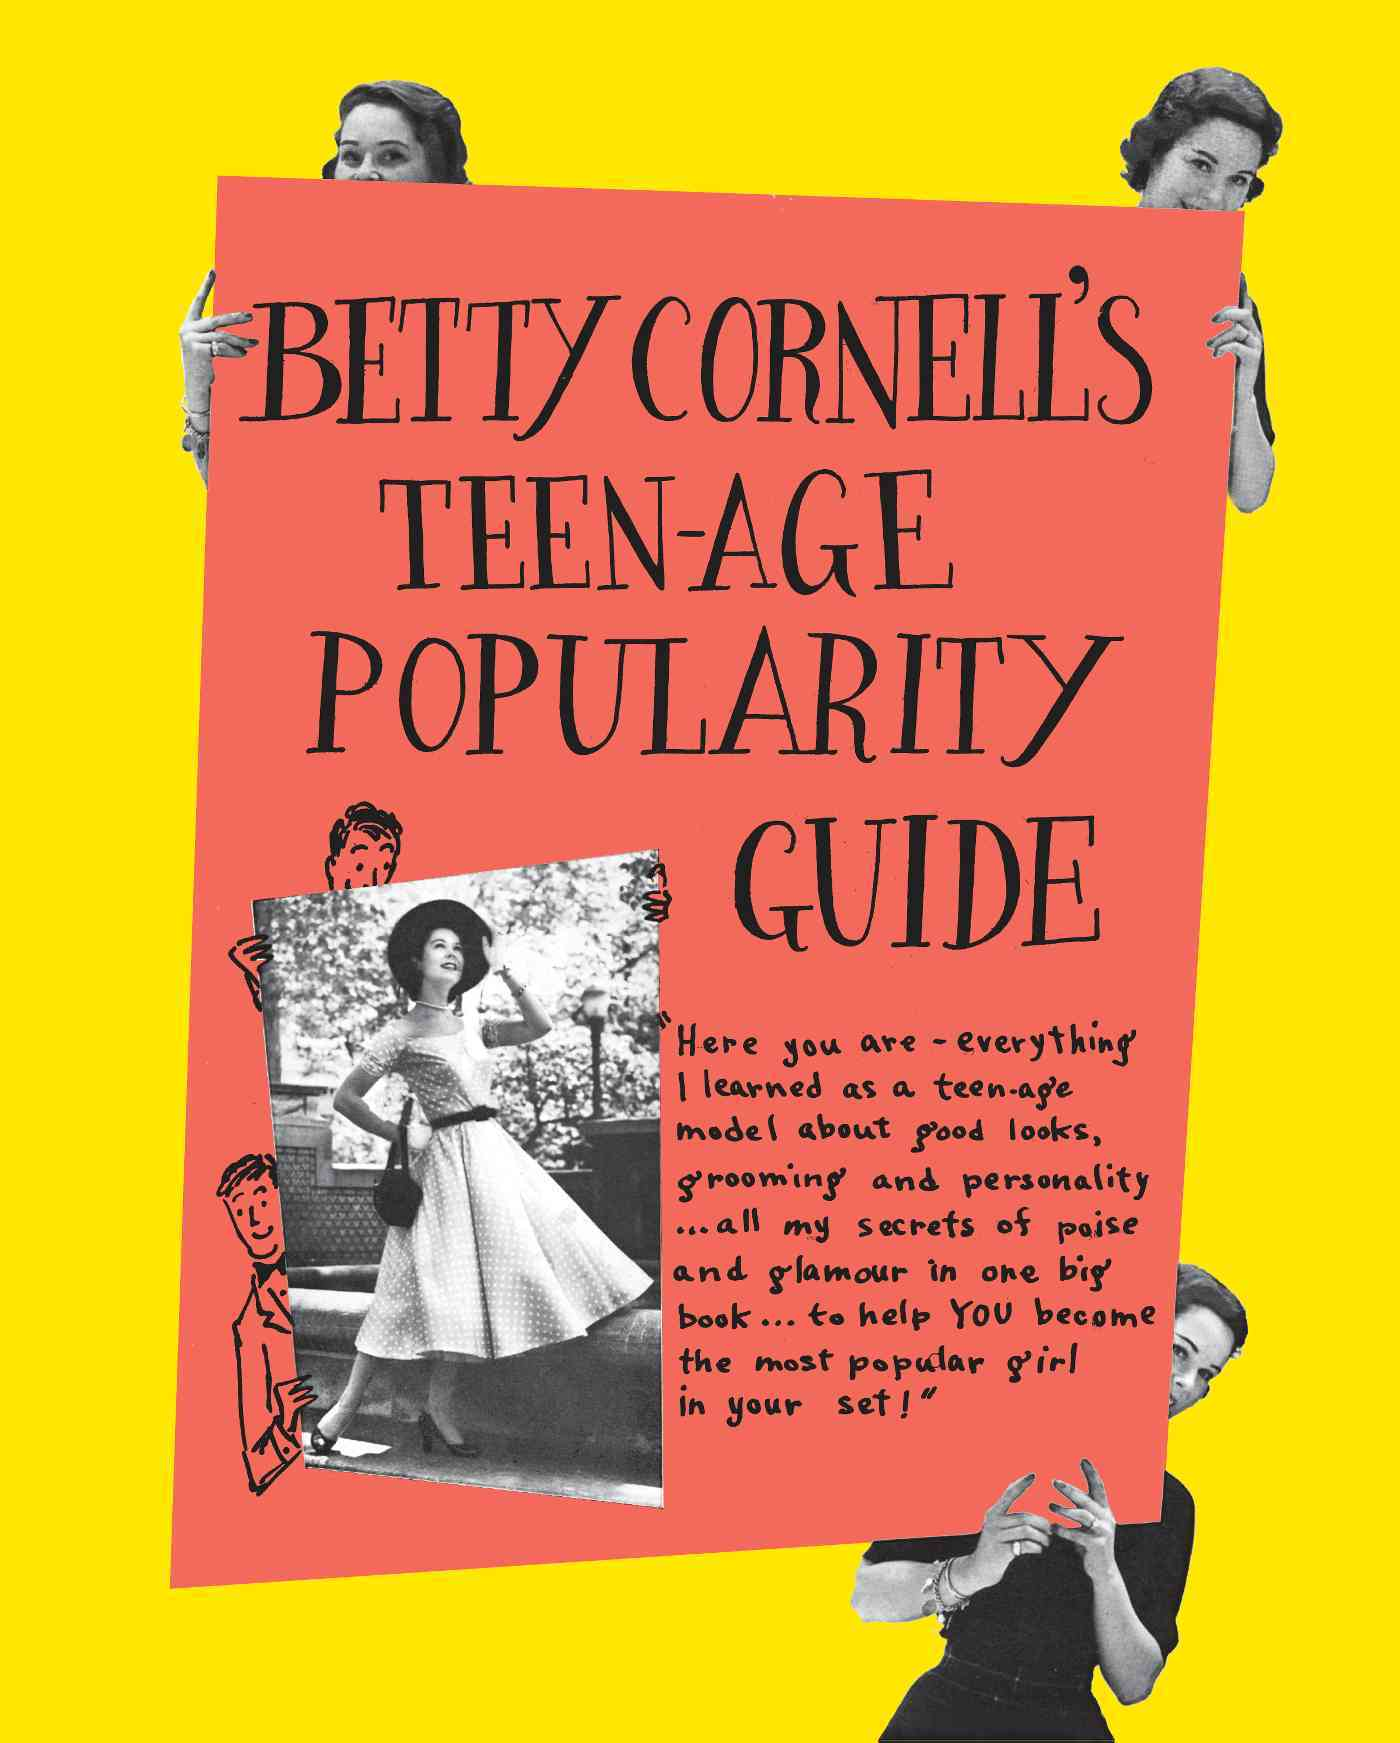 Betty Cornell's Teen-Age Popularity Guide (Hardcover)